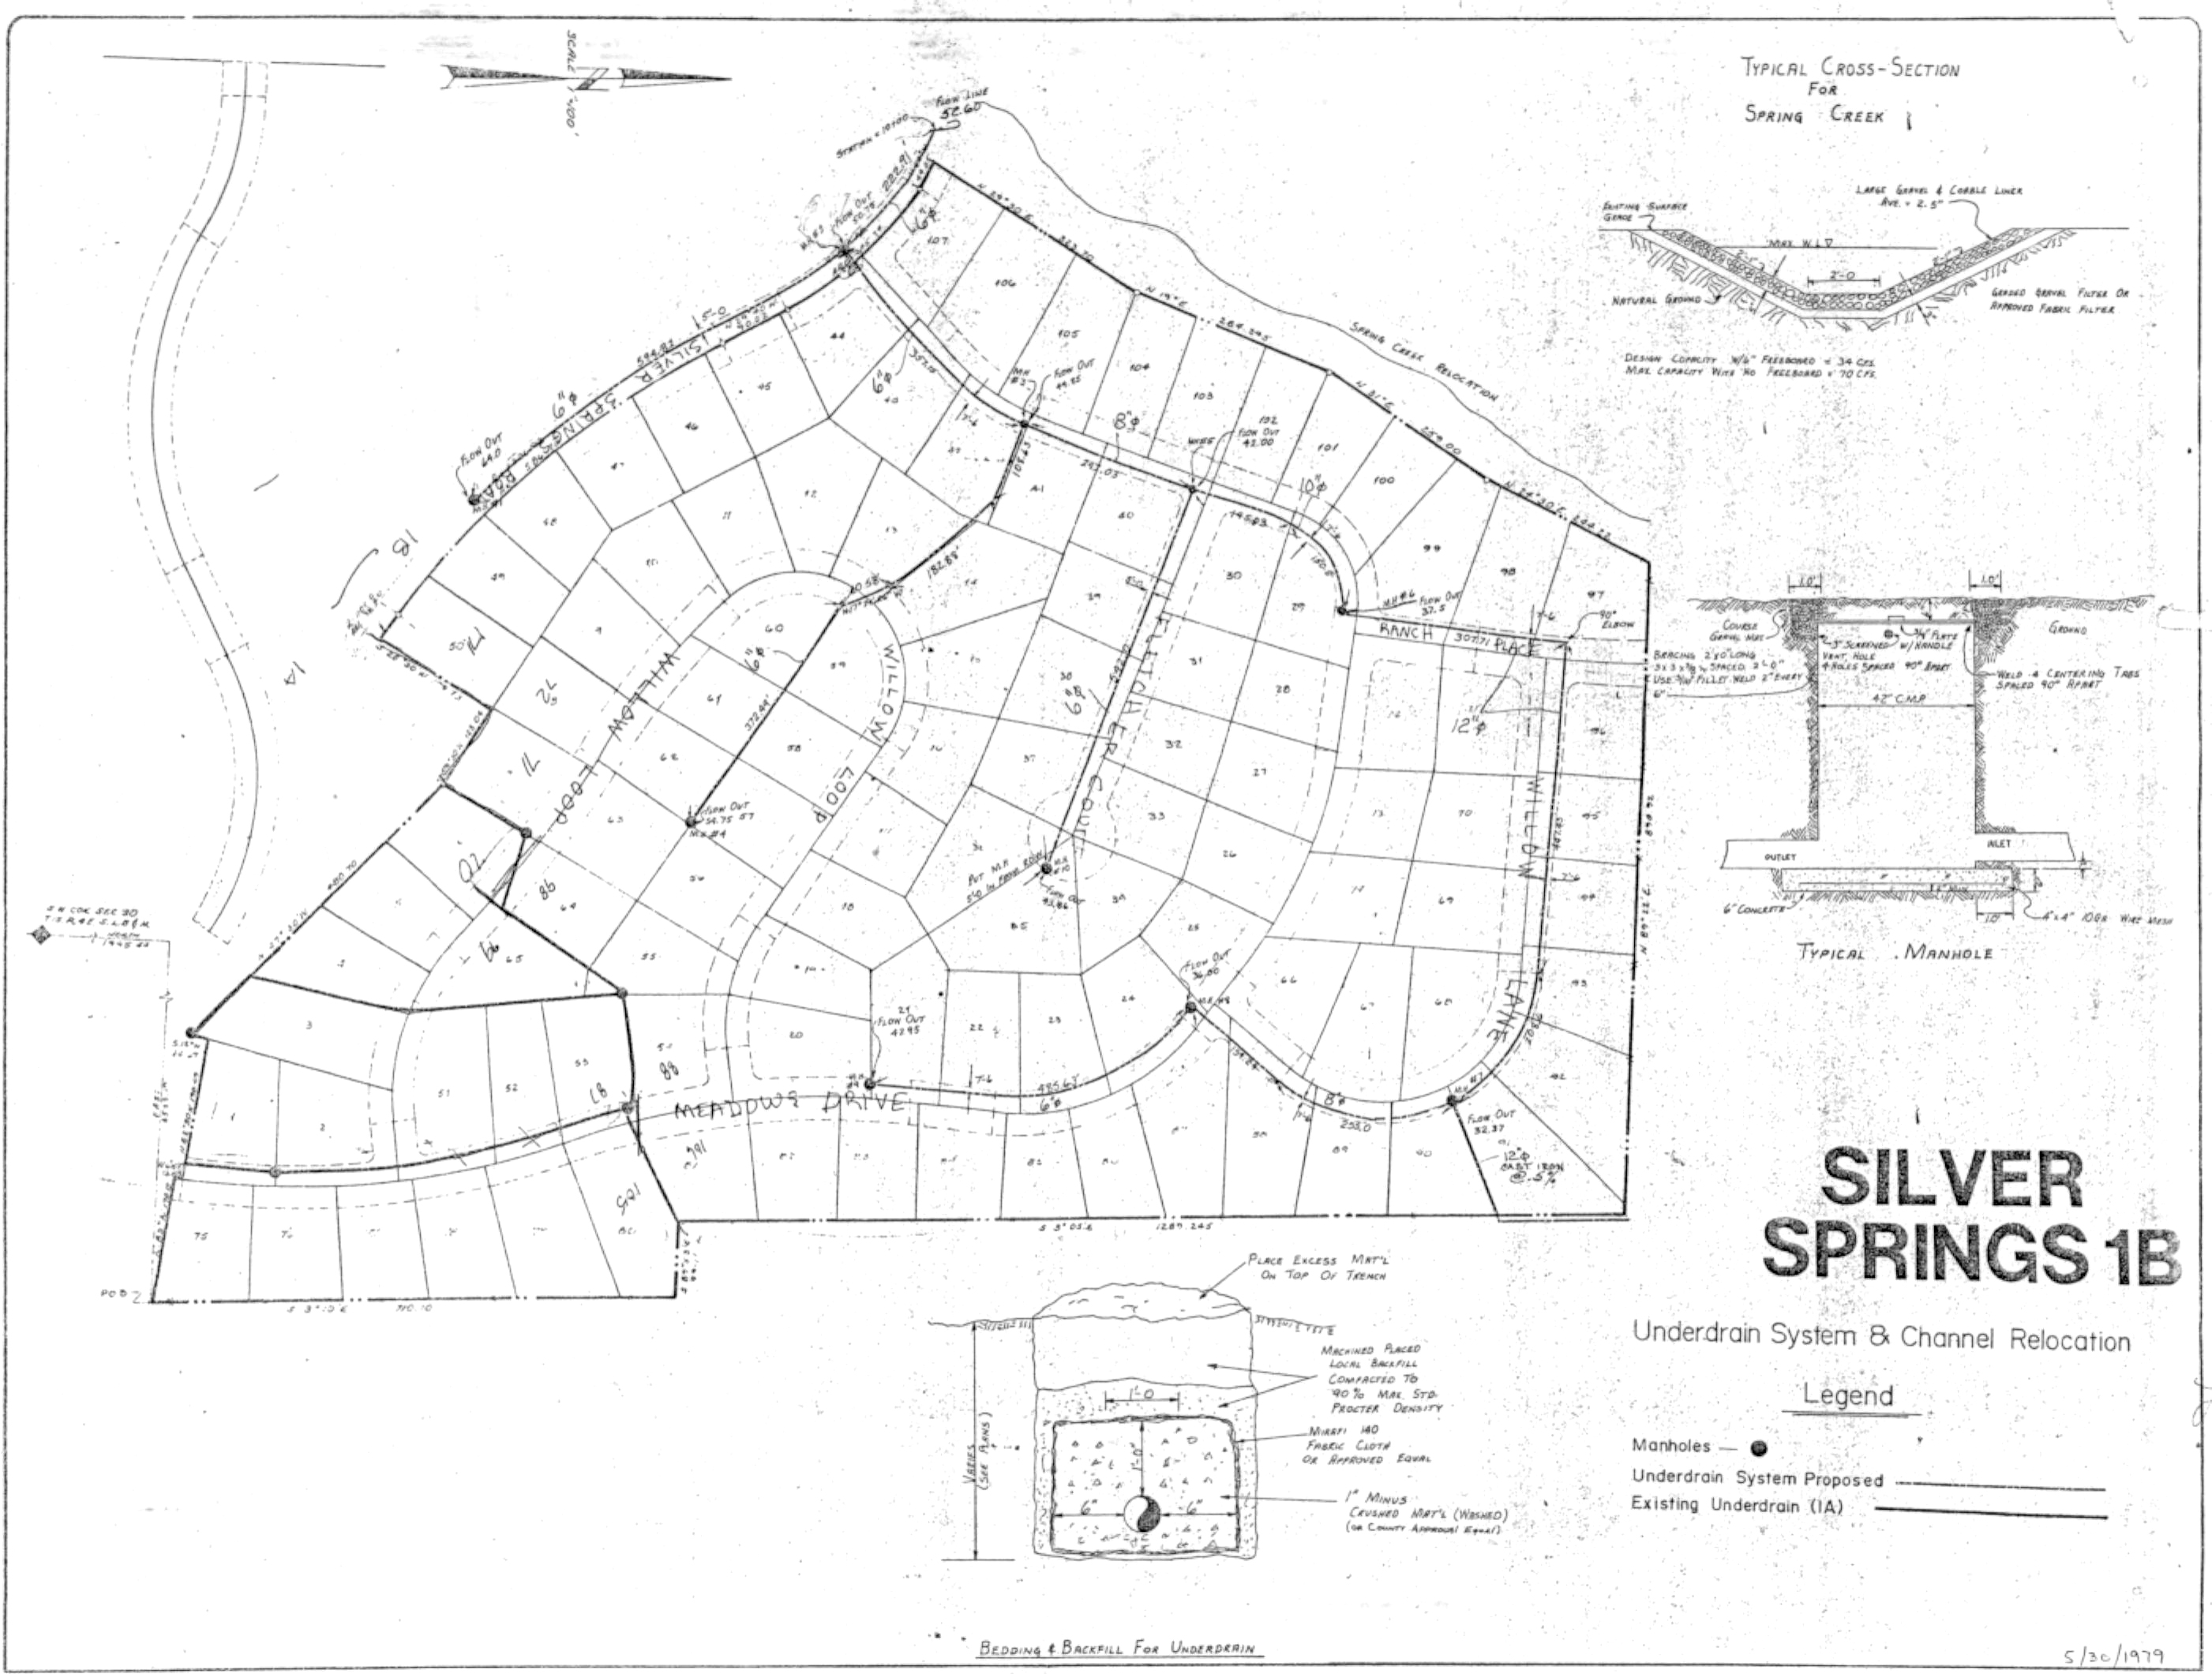 S silversprings munity wp content uploads ss1b underdrain system 1979proposed